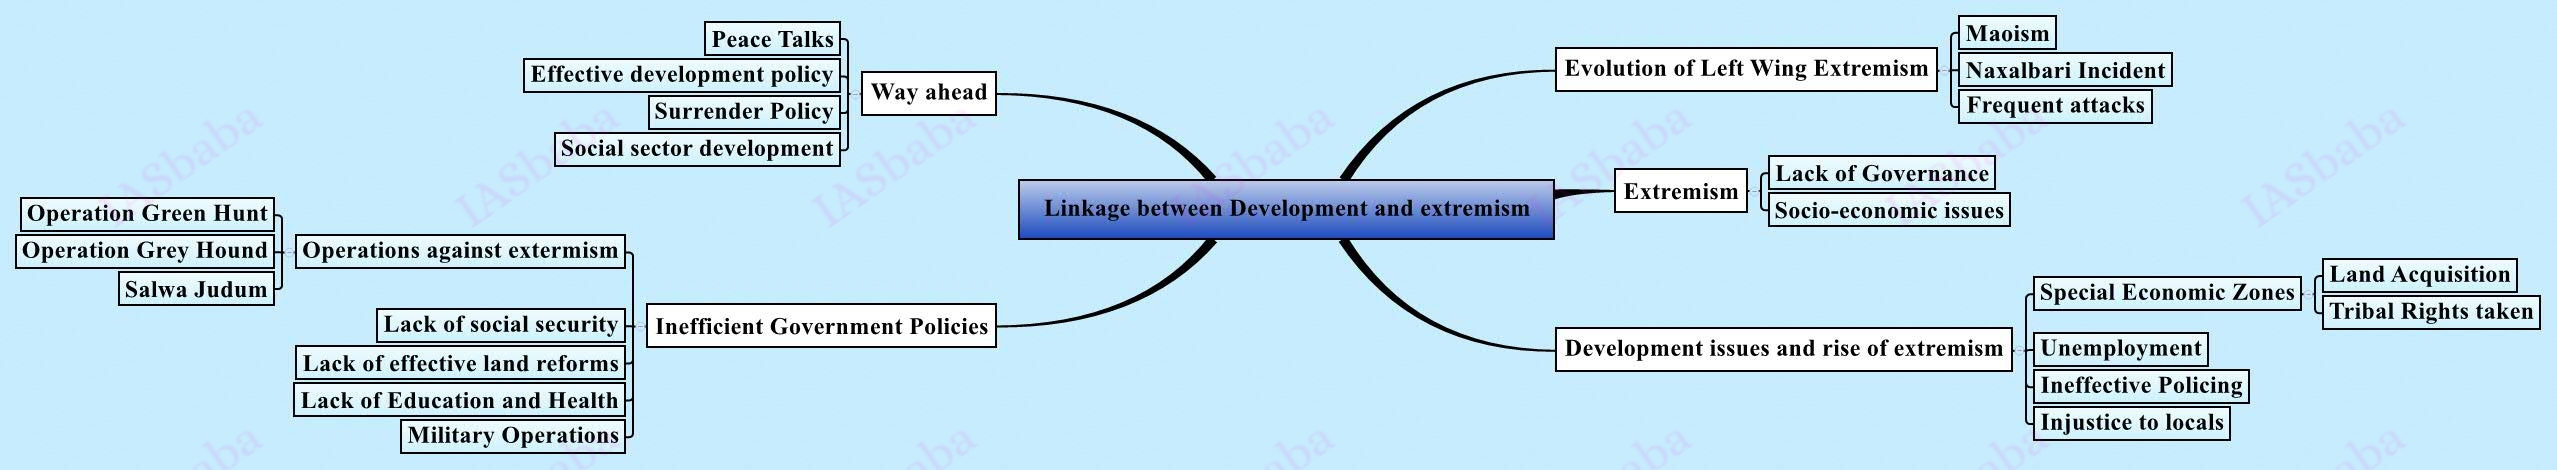 Linkage-between-Development-and-extremism